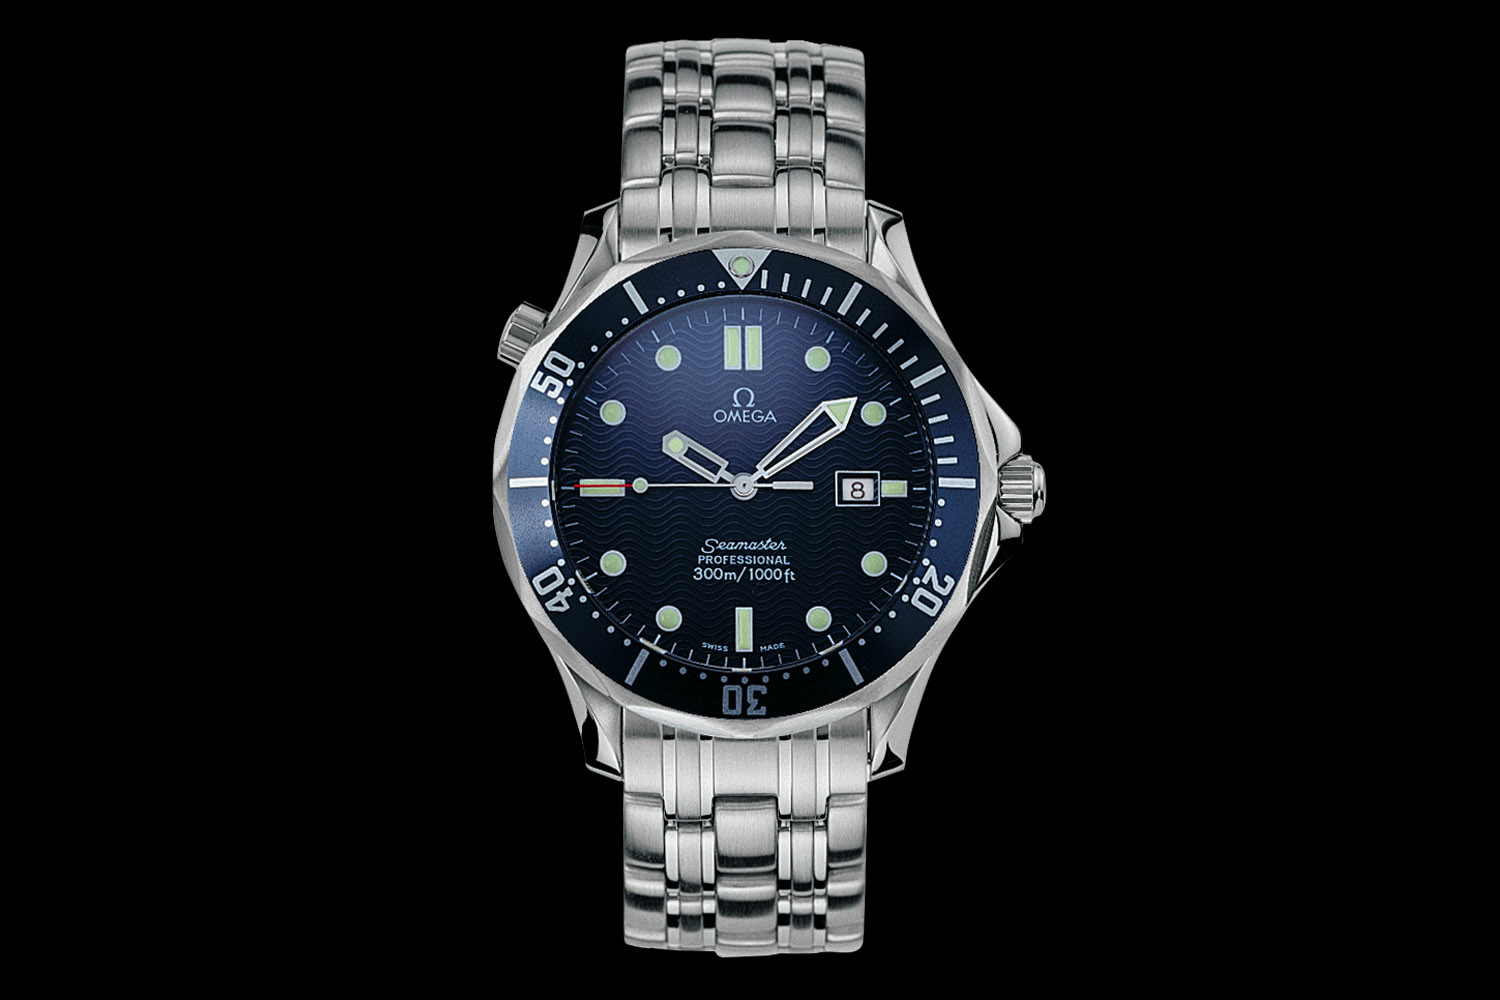 Hands on omega seamaster diver 300m master chronometer baselworld 2018 specs price for Omega seamaster professional